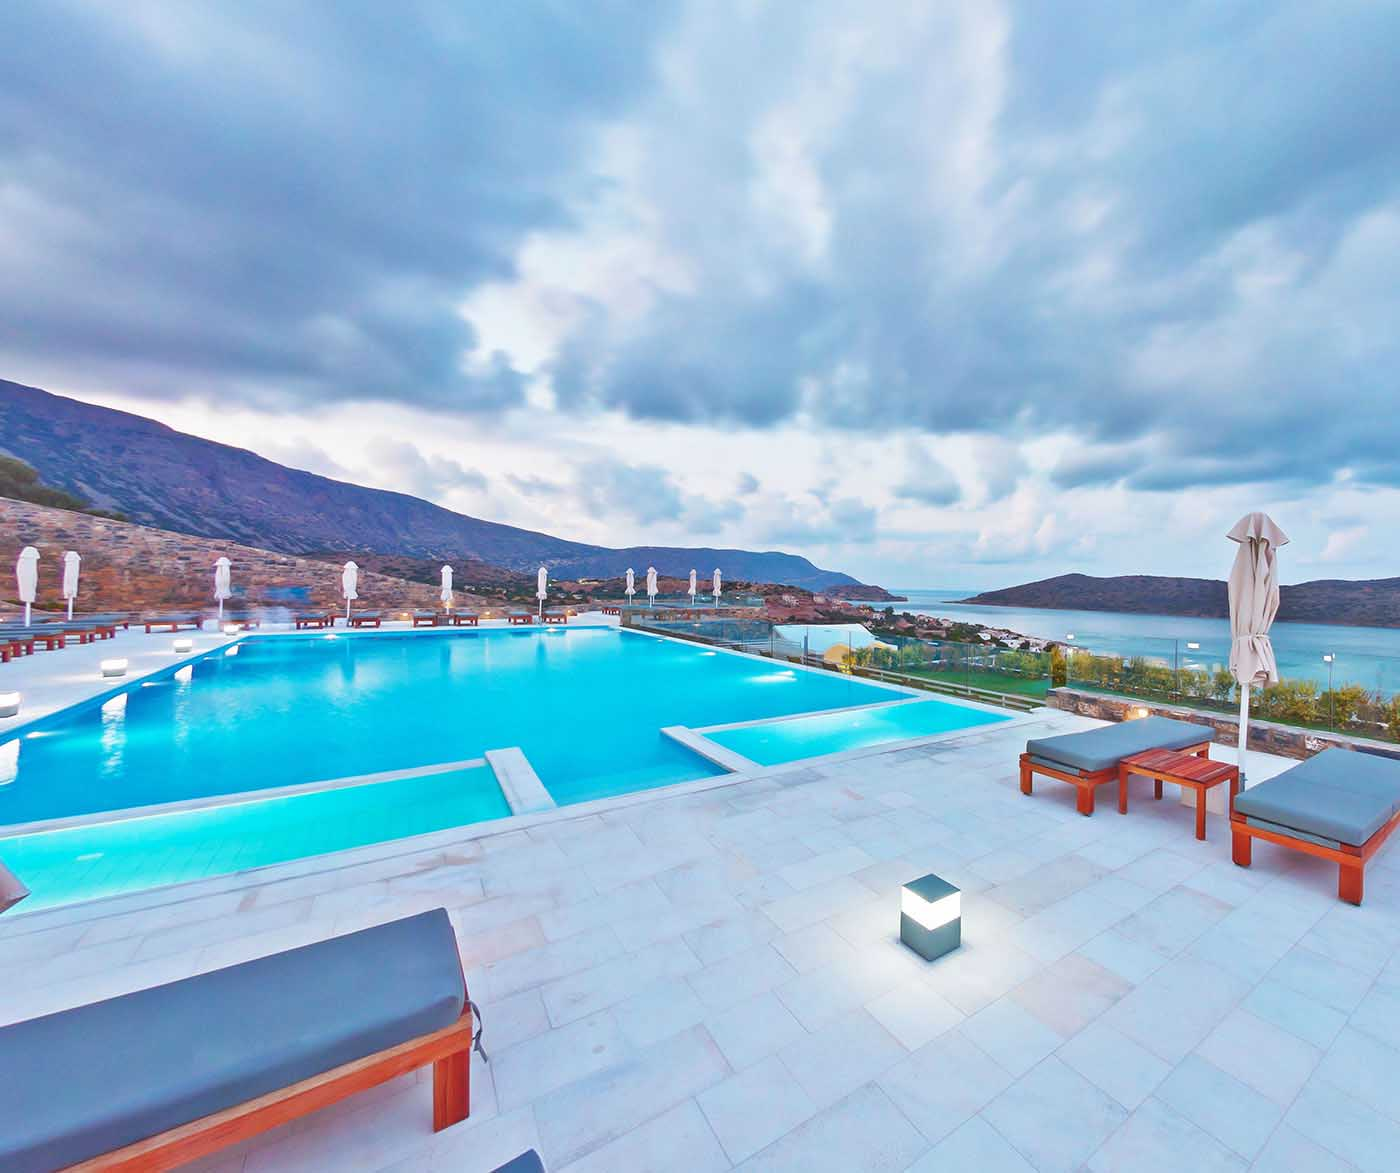 Epirus hotels & resorts, 50% discount for early bookings, Epirus, Greece, Europe